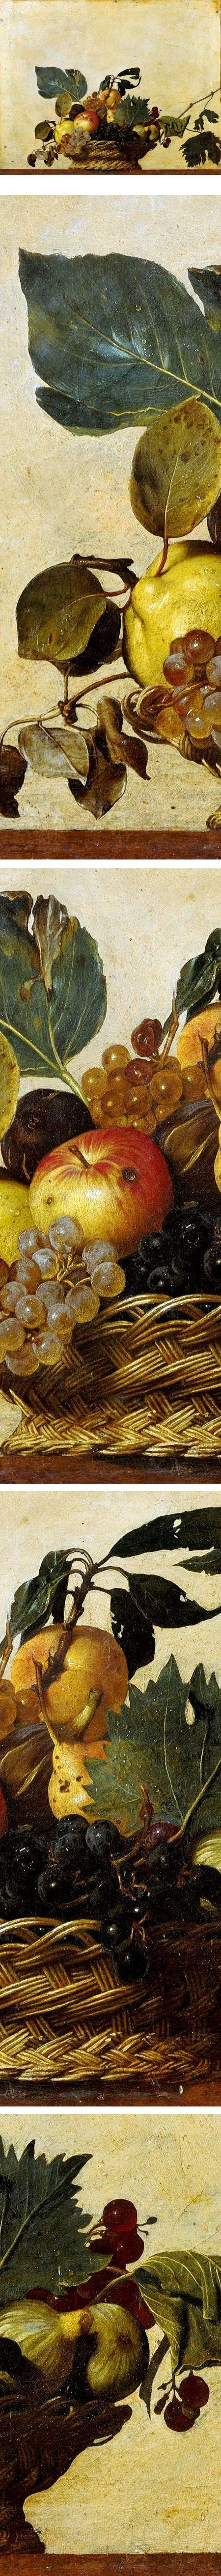 Basket of Fruit, Caravaggio (Michelangelo Merisi da Caravaggio) ... vibration of his colours are ... litherally edible,if I may... :) Sensational !: